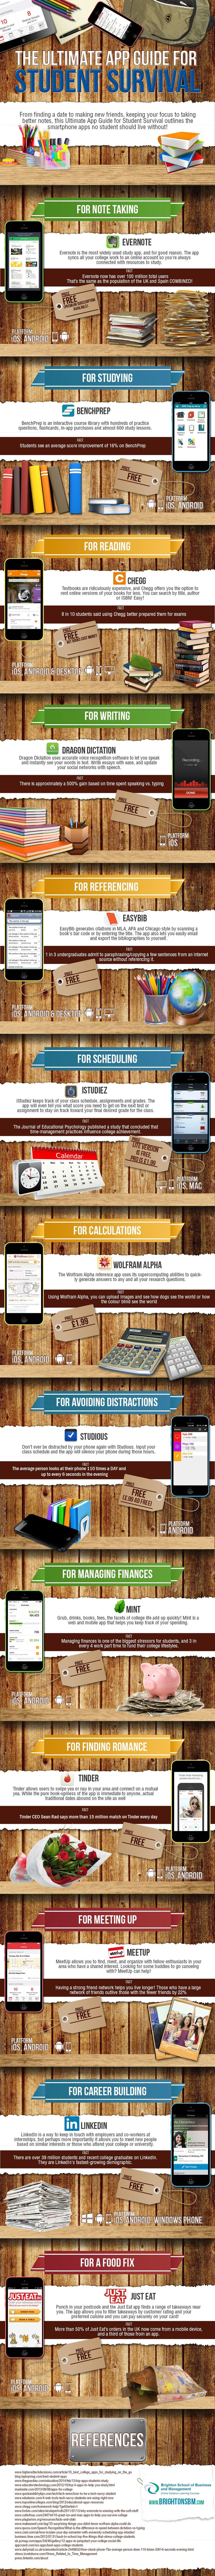 The Ultimate App Guide For Student Survival